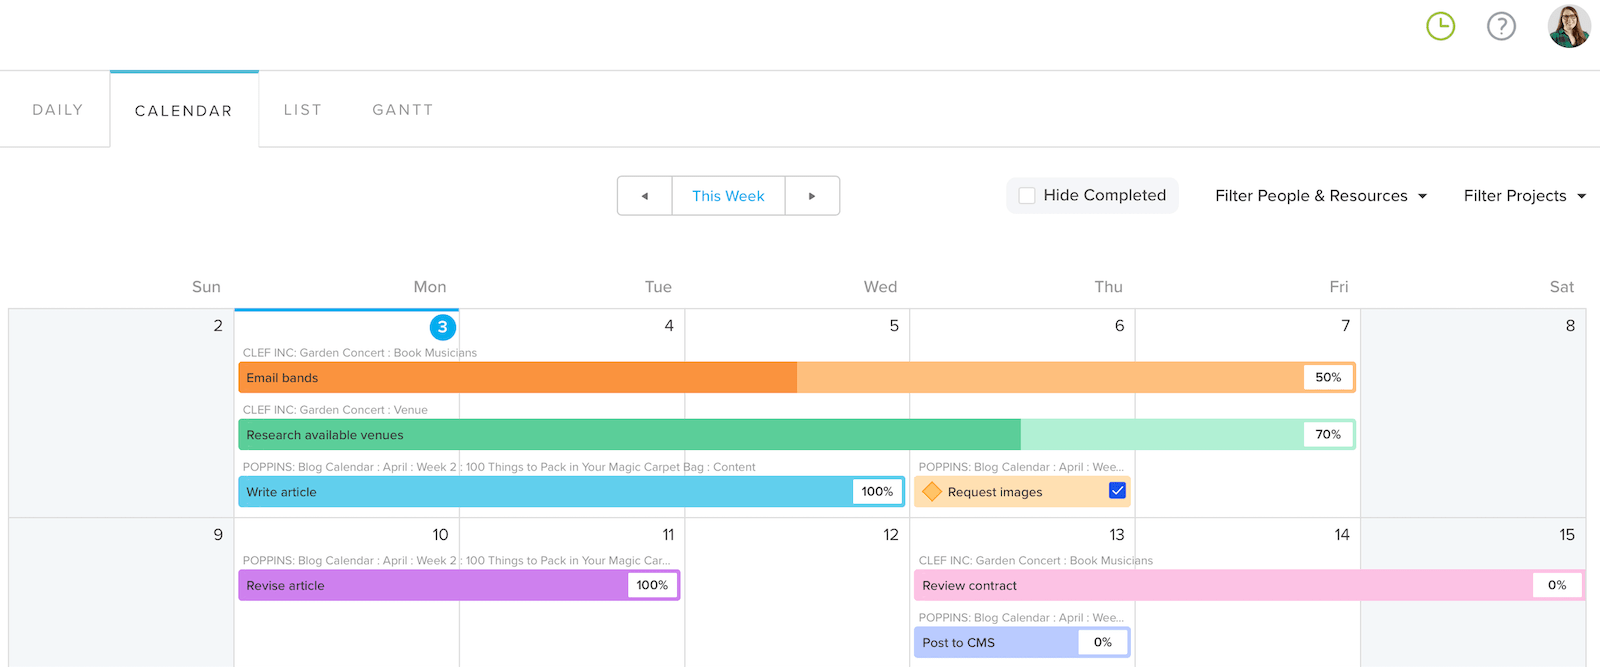 My Calendar view weekly task list feature in TeamGantt